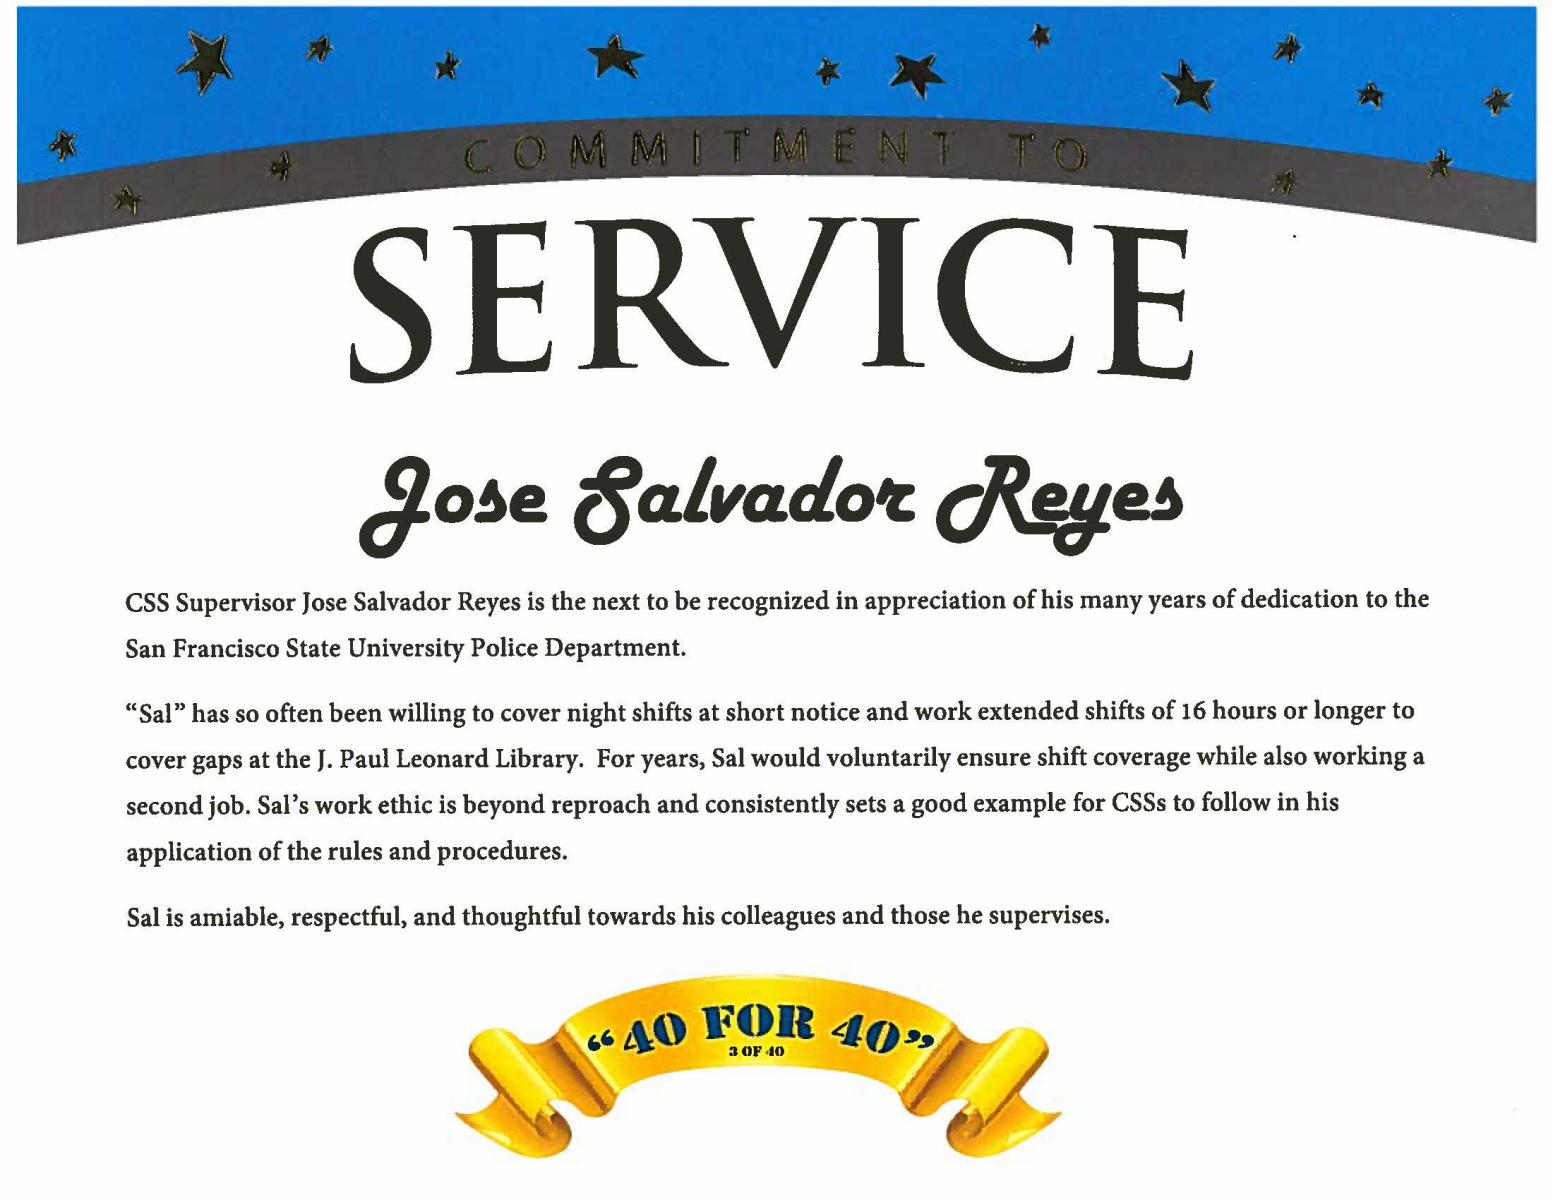 Service recognition award for CSS Salvador